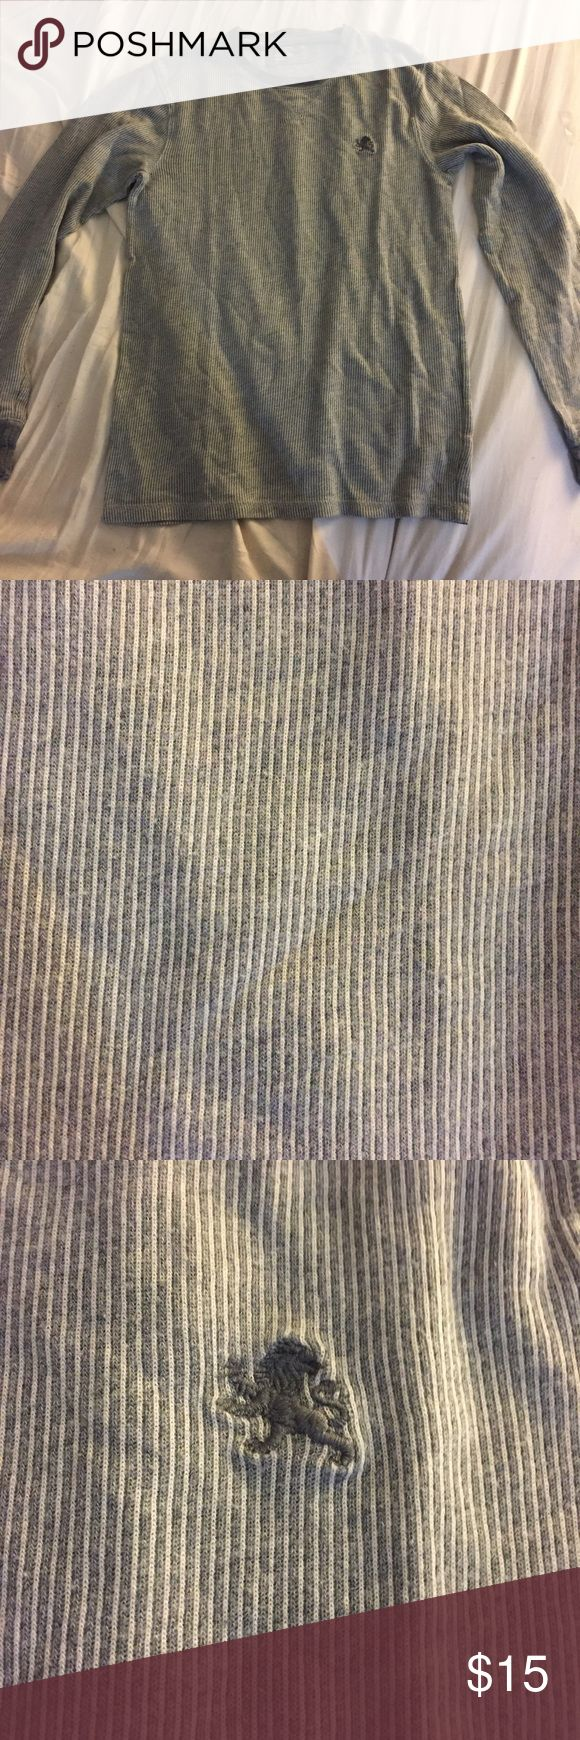 [Express] Men's Thermal Henley Waffle Shirt Grey with white vertical stripes. Great condition! Express Shirts Tees - Long Sleeve